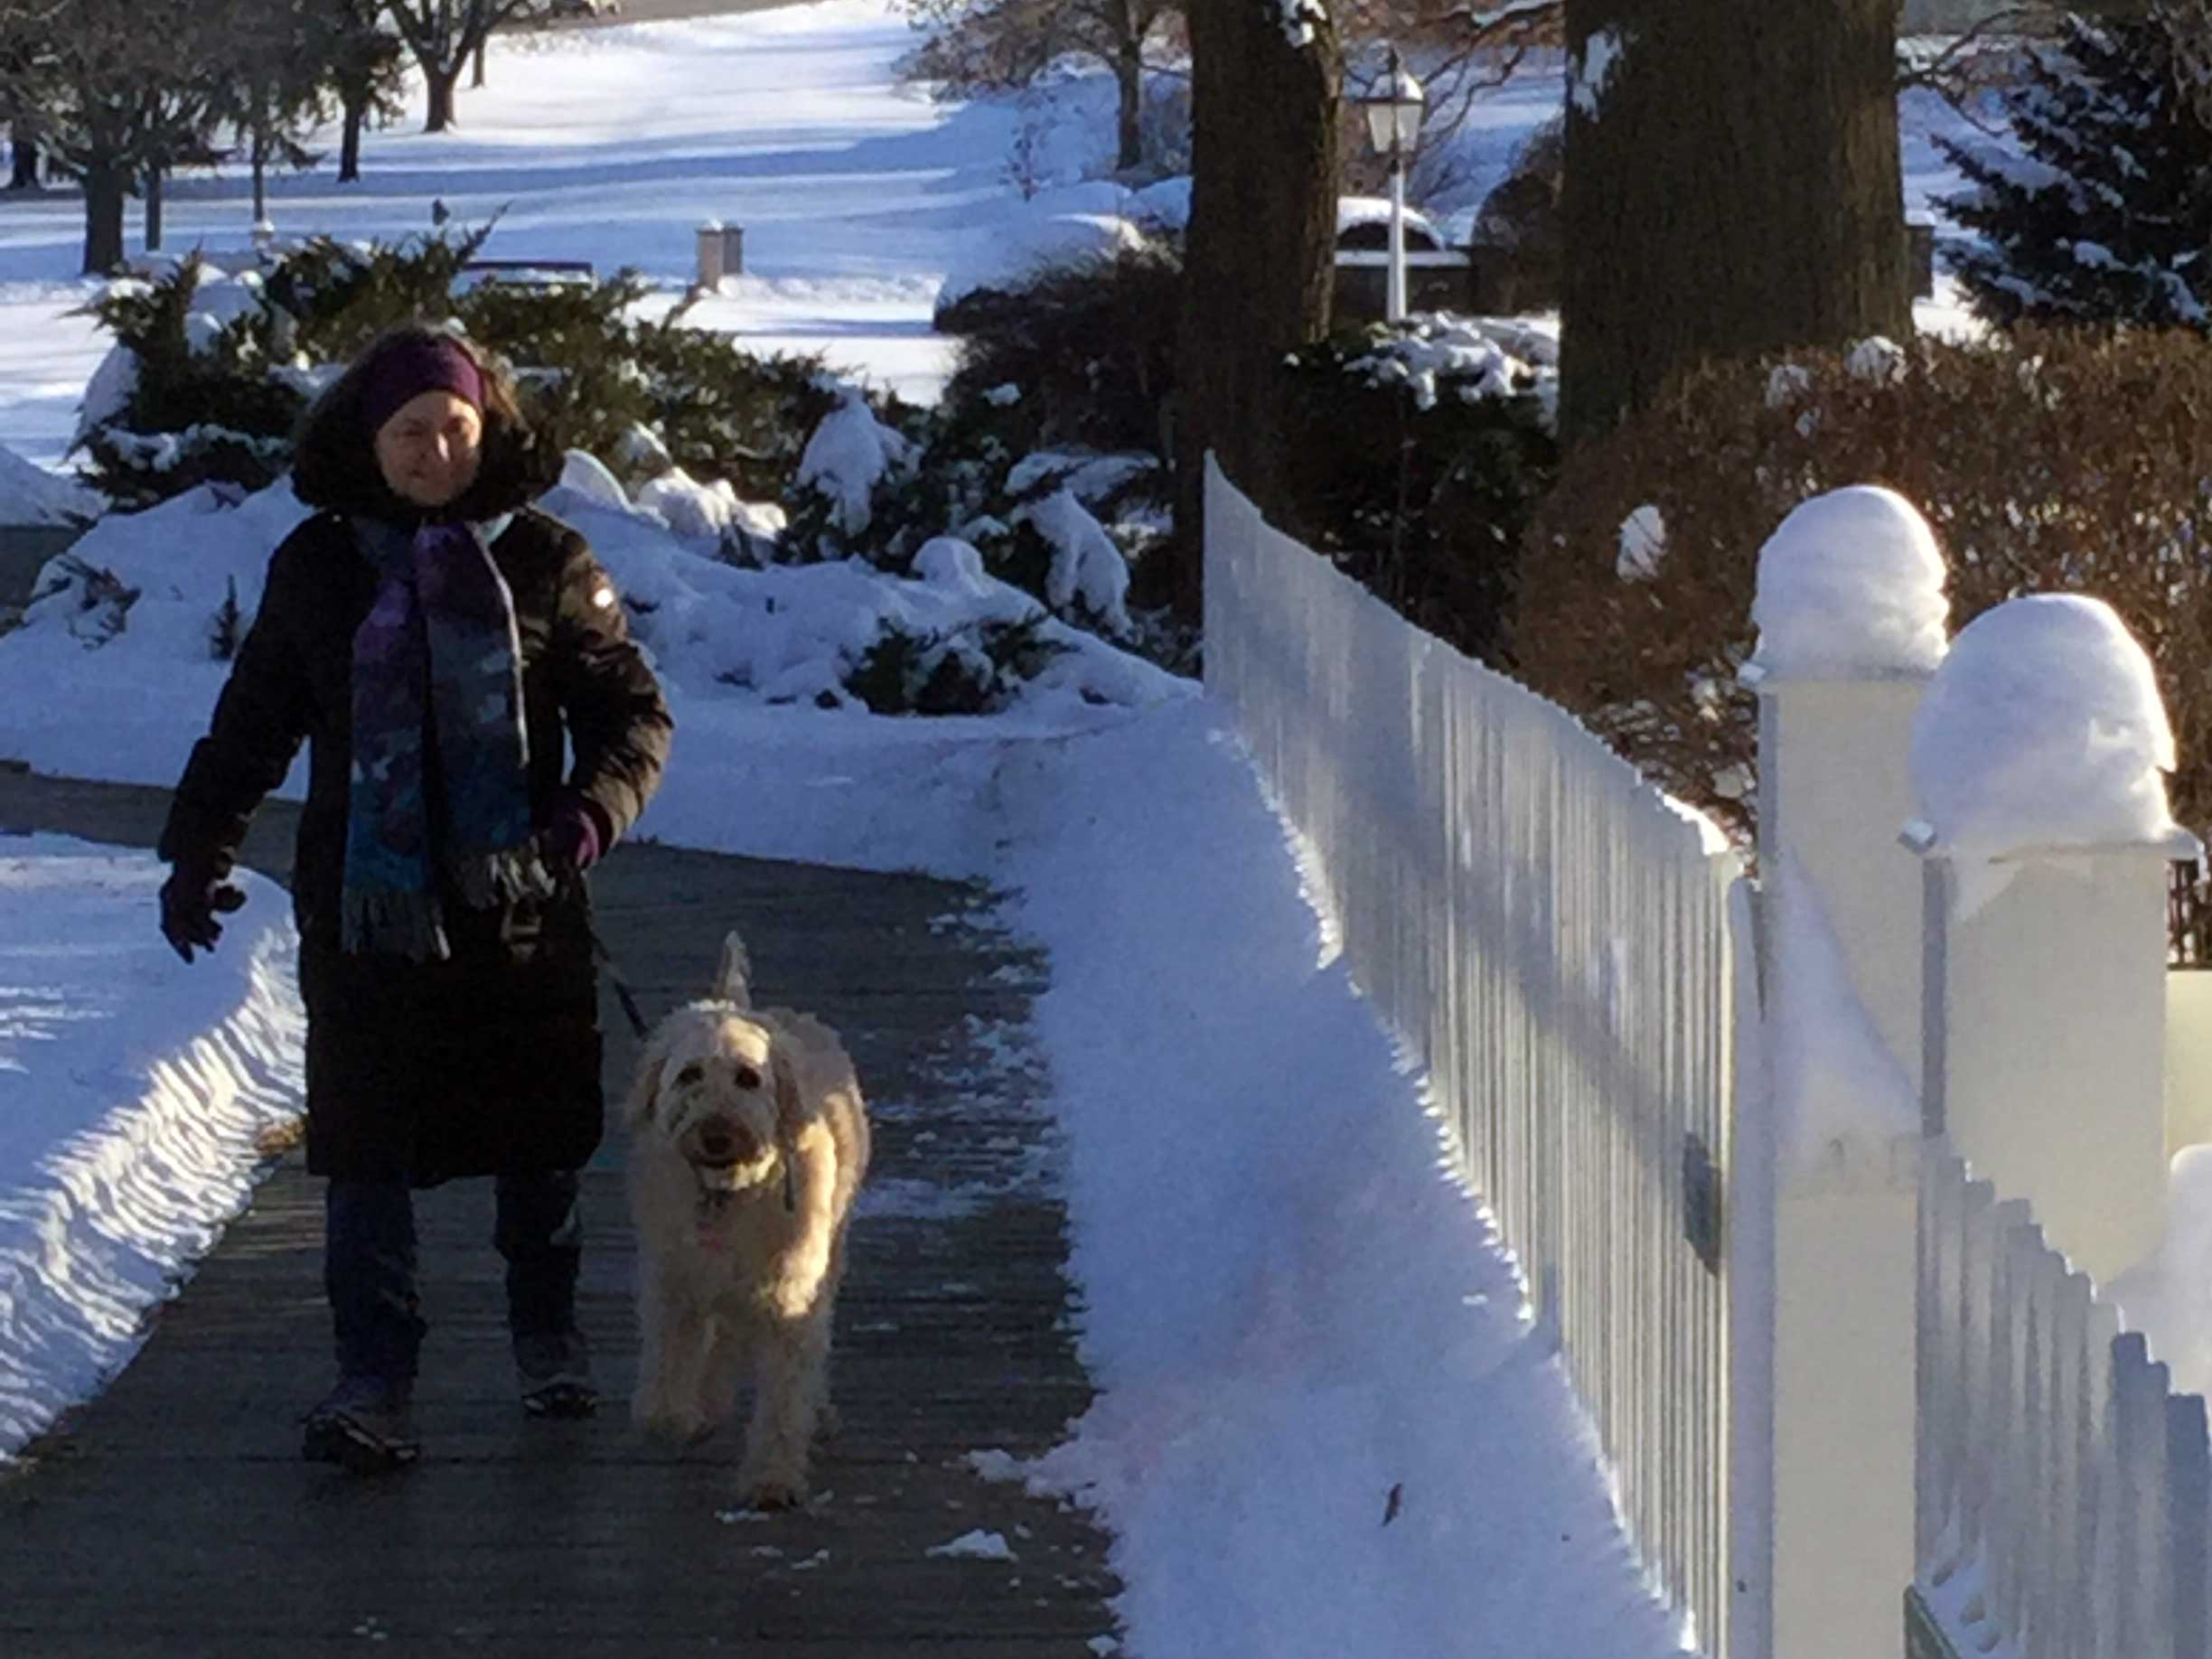 A woman in a winter coat walks her shaggy white dog on a boardwalk in a snowy park.